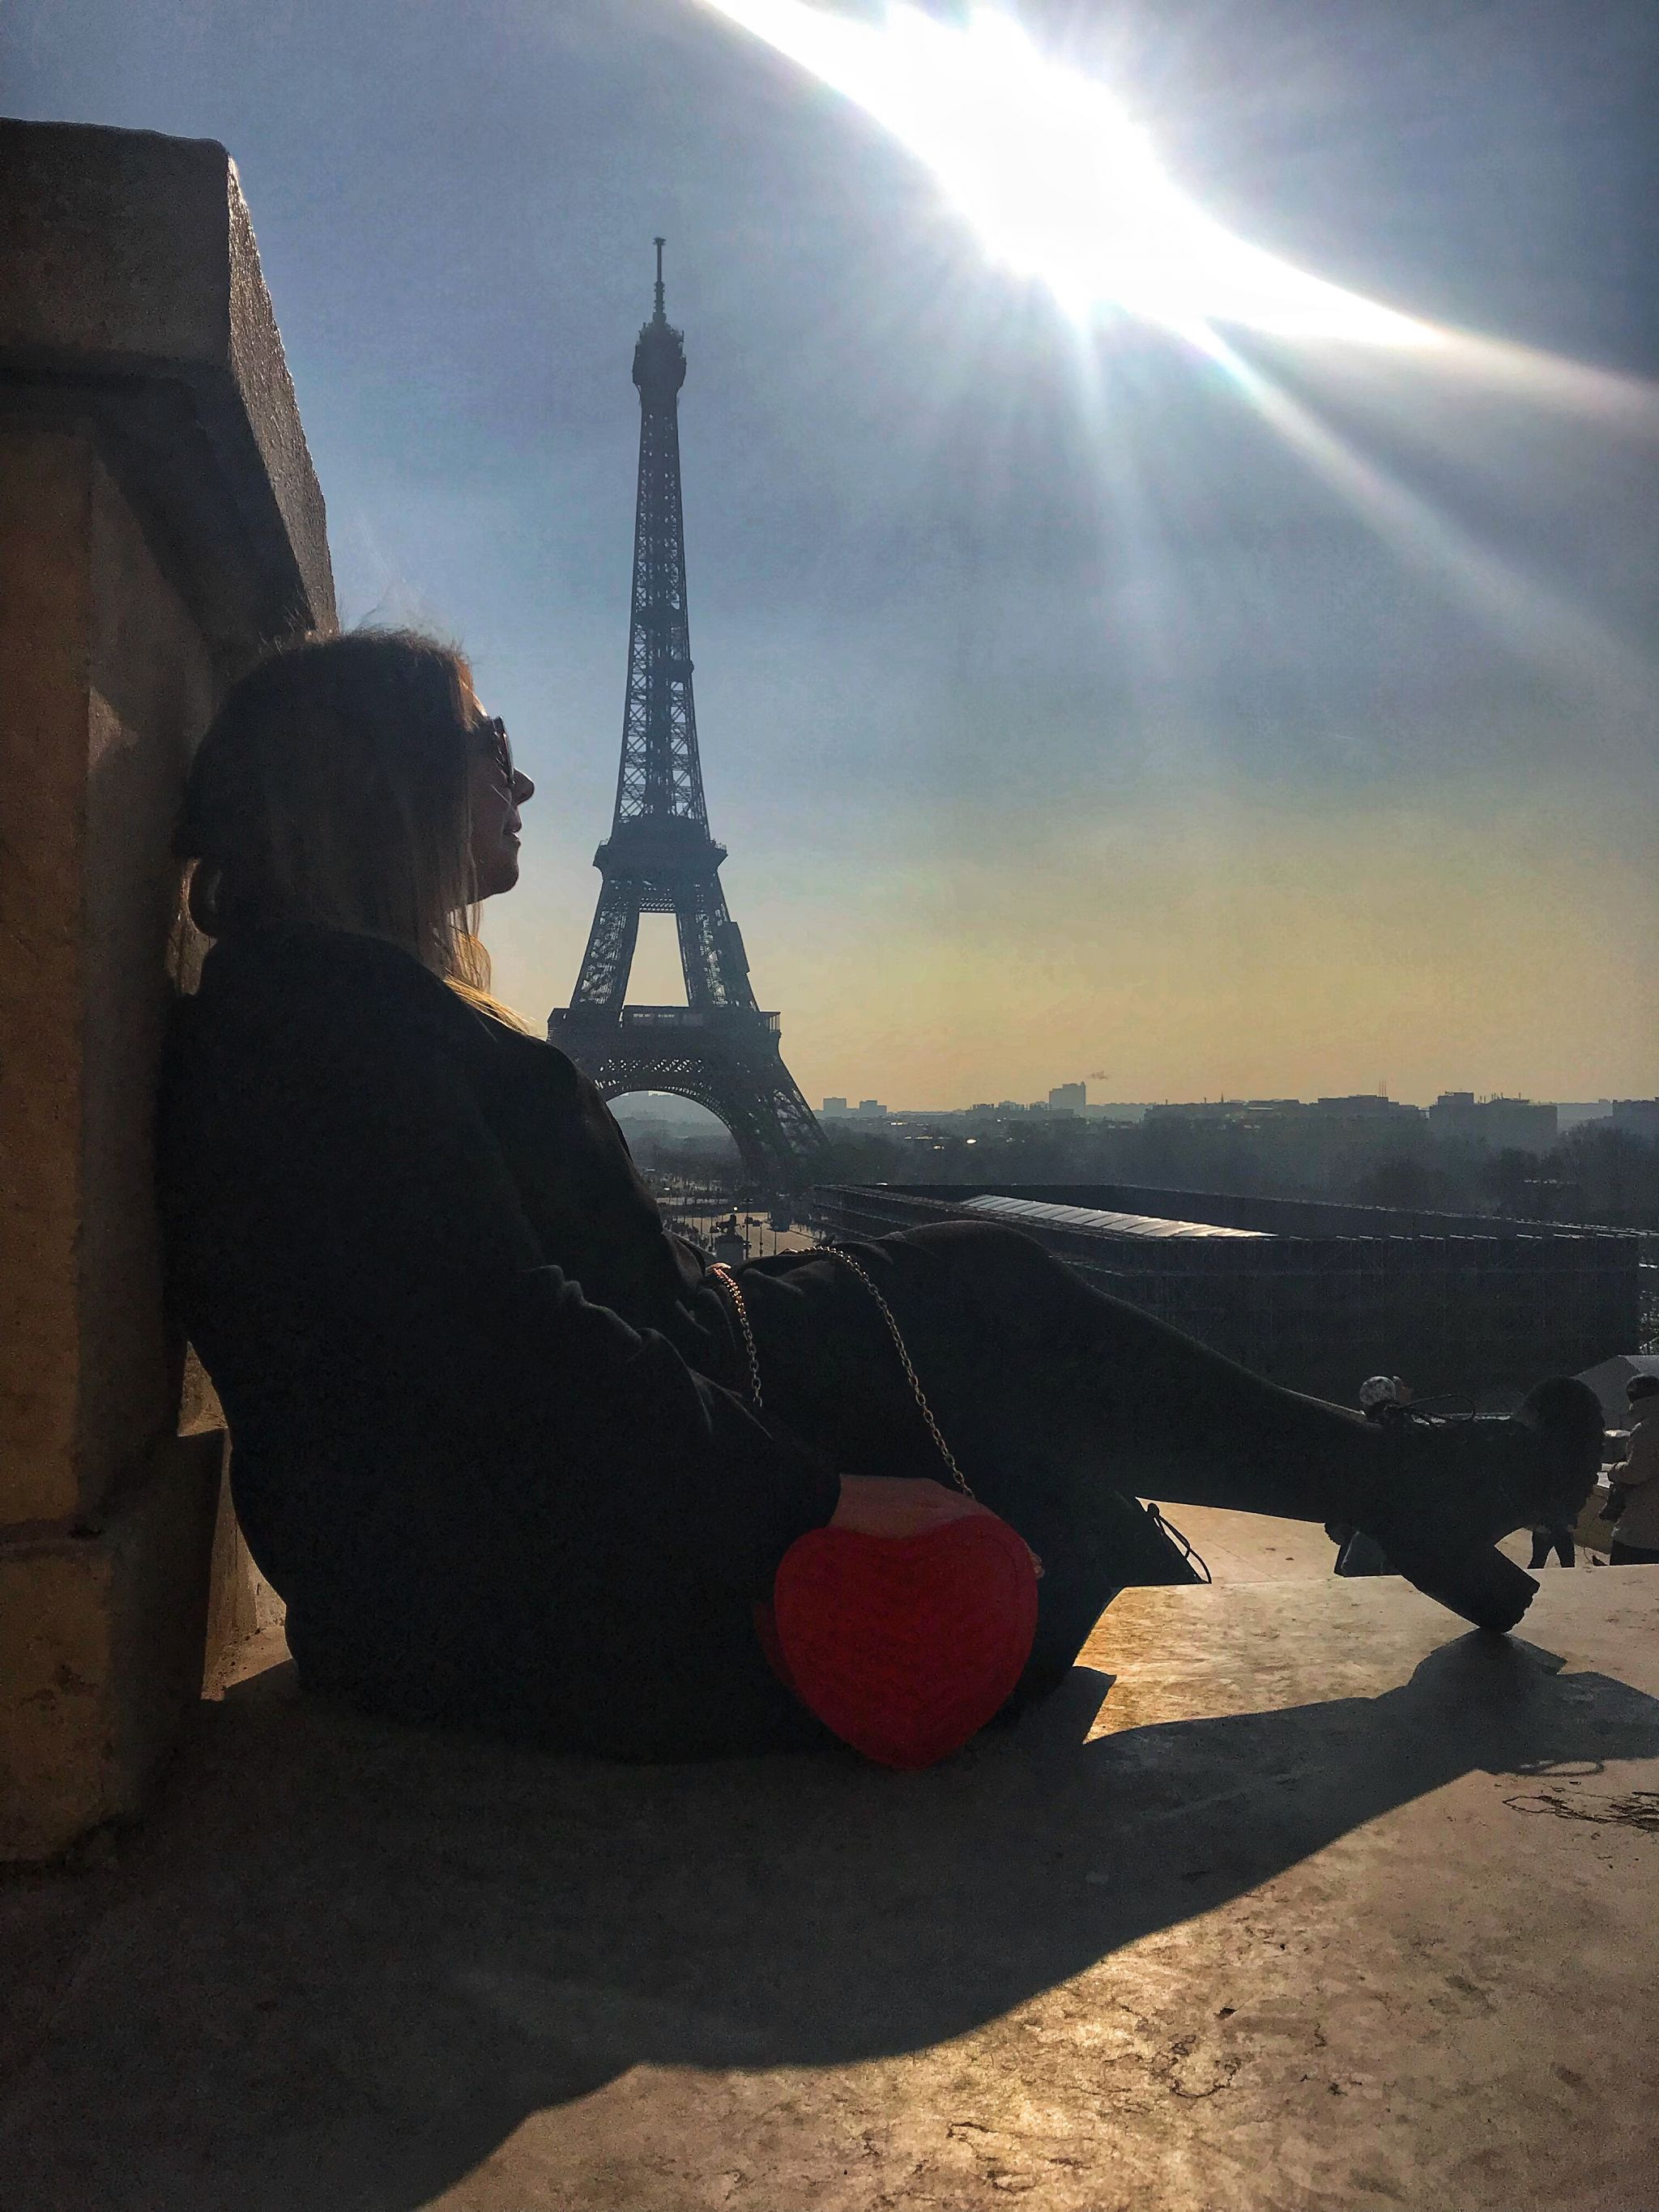 Soaking up the sunset views of the Eiffel Tower